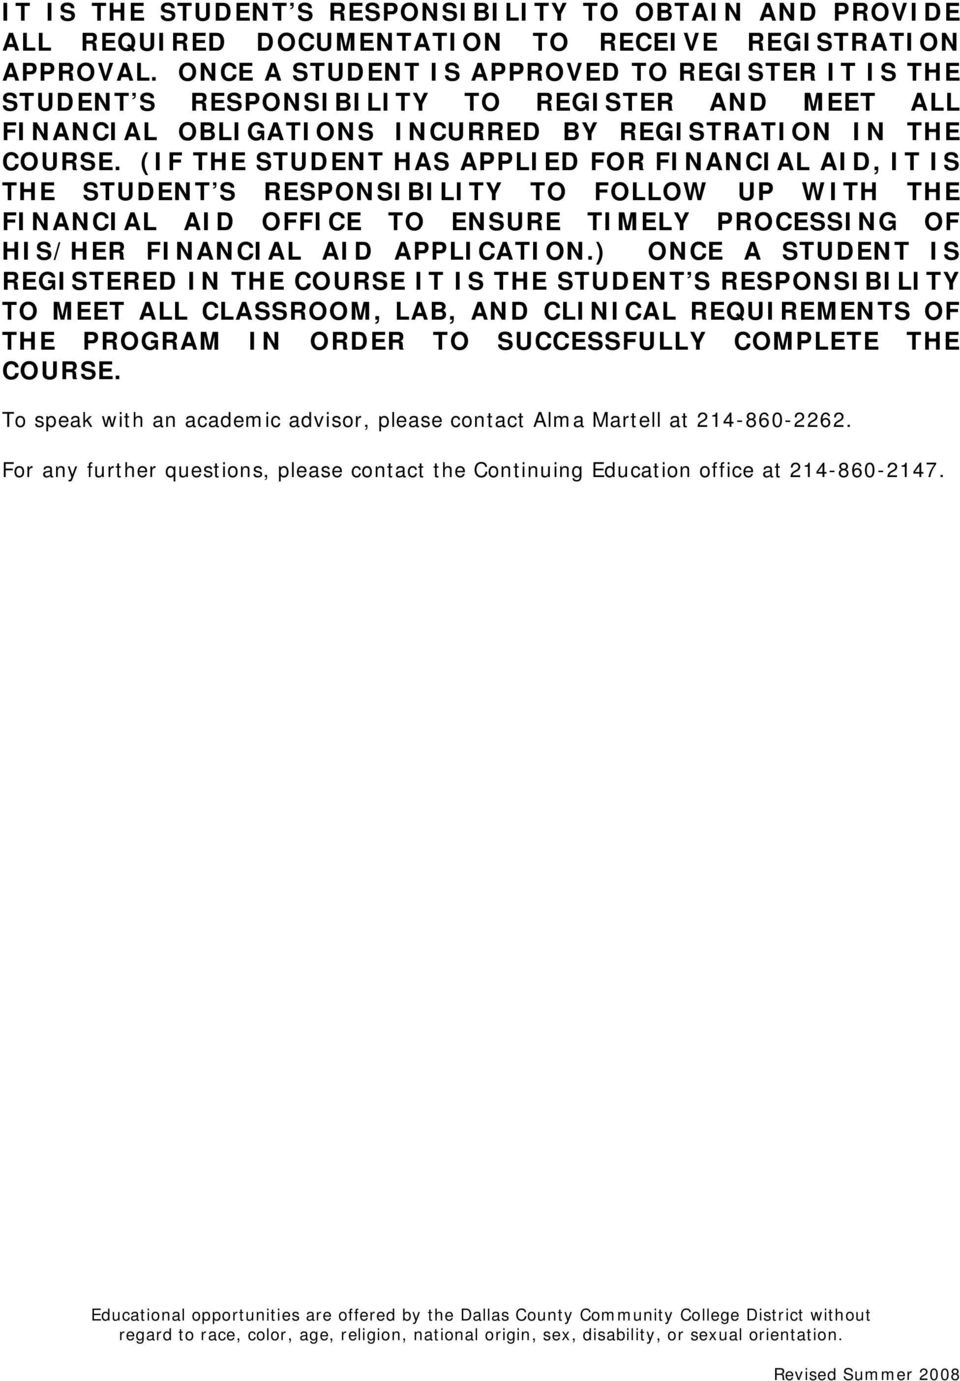 (IF THE STUDENT HAS APPLIED FOR FINANCIAL AID, IT IS THE STUDENT S RESPONSIBILITY TO FOLLOW UP WITH THE FINANCIAL AID OFFICE TO ENSURE TIMELY PROCESSING OF HIS/HER FINANCIAL AID APPLICATION.